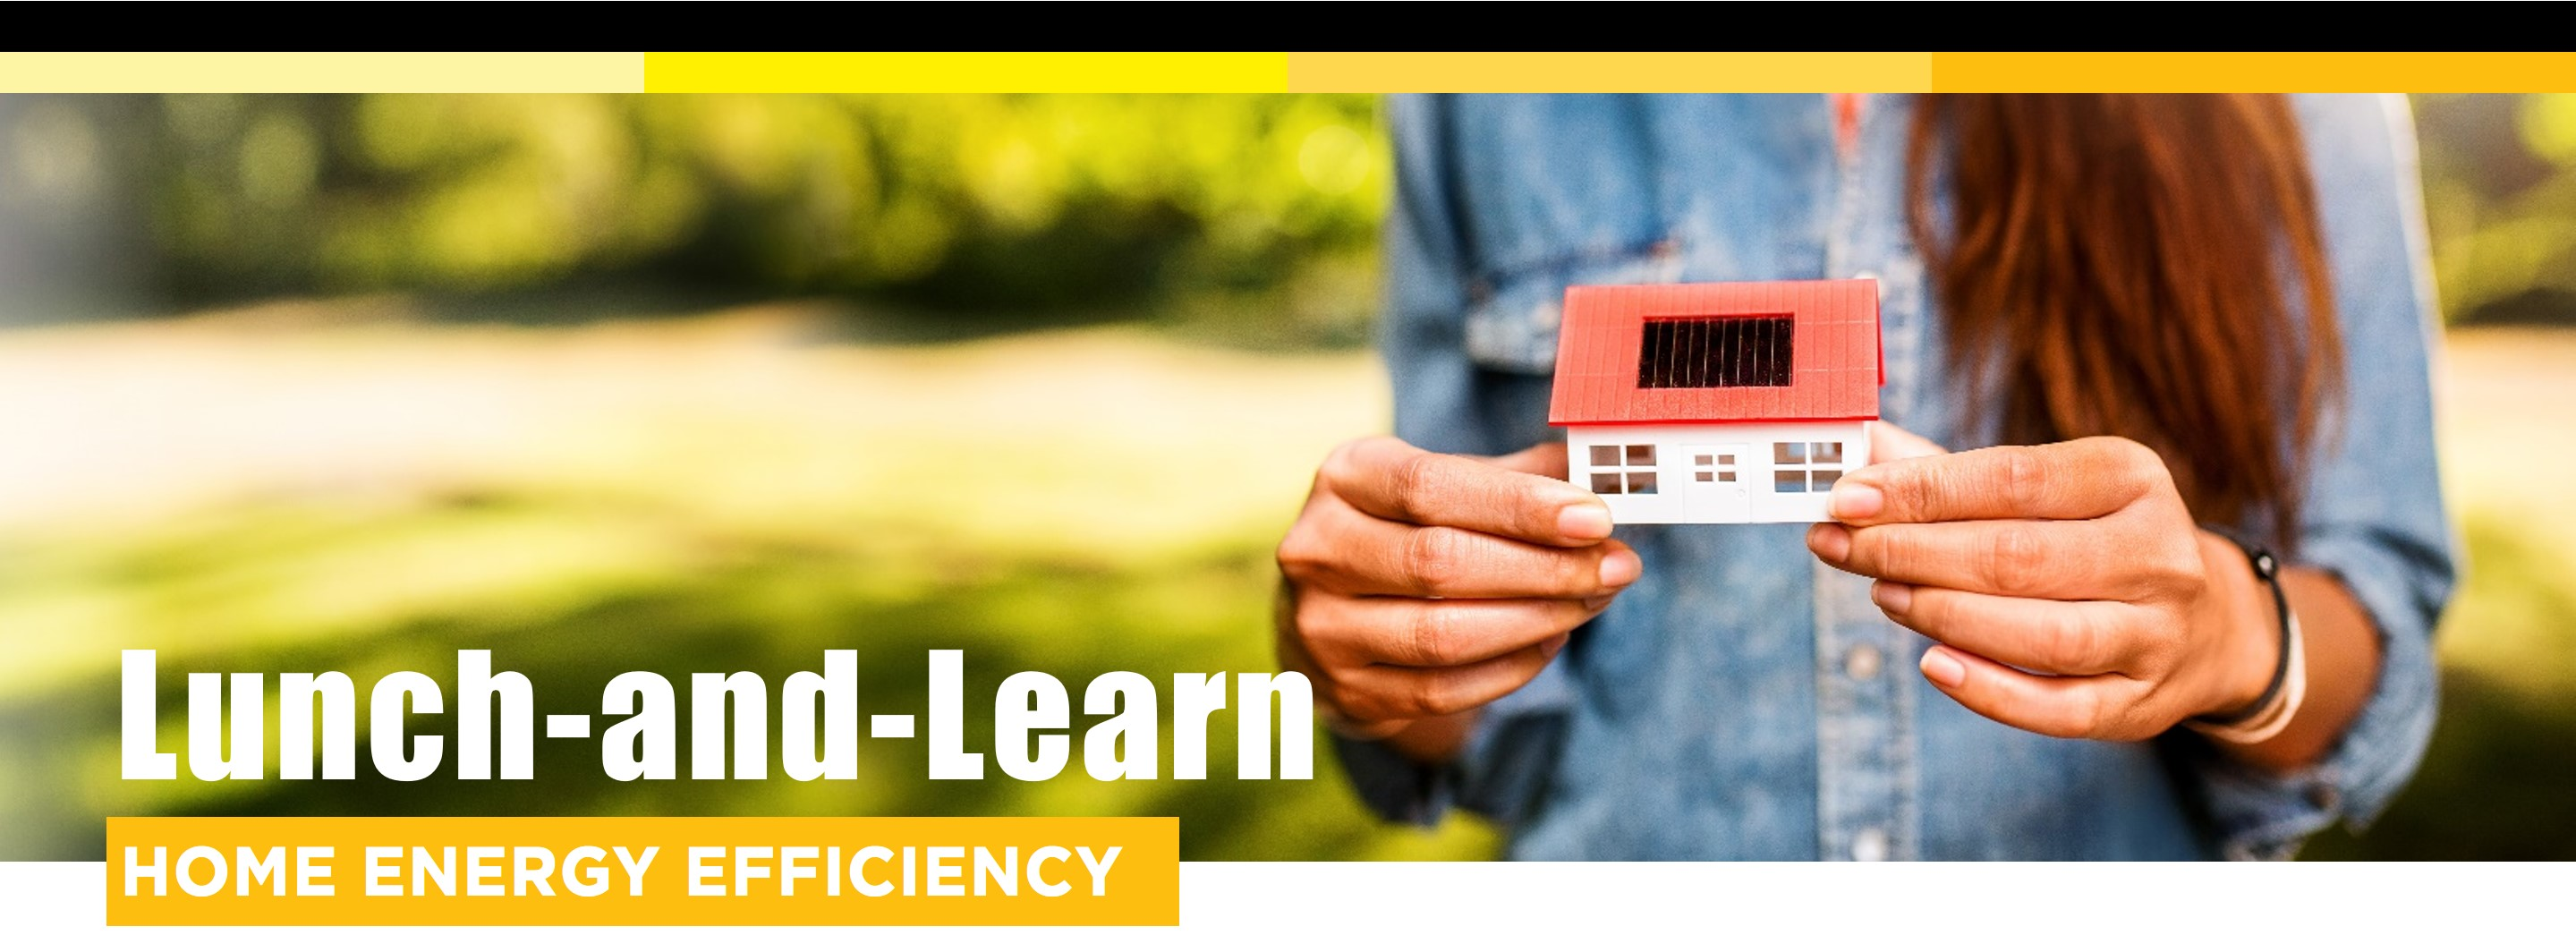 Lunch-and-learn header image of woman holding small house